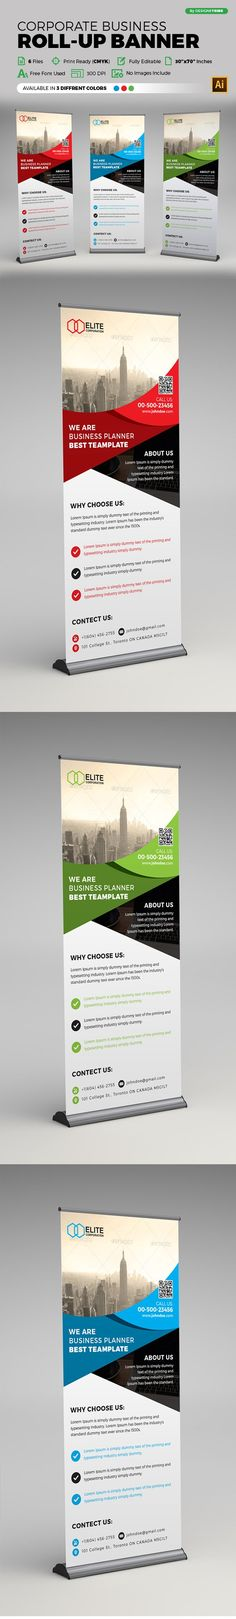 43 Pull Up Banner Ideas Roll